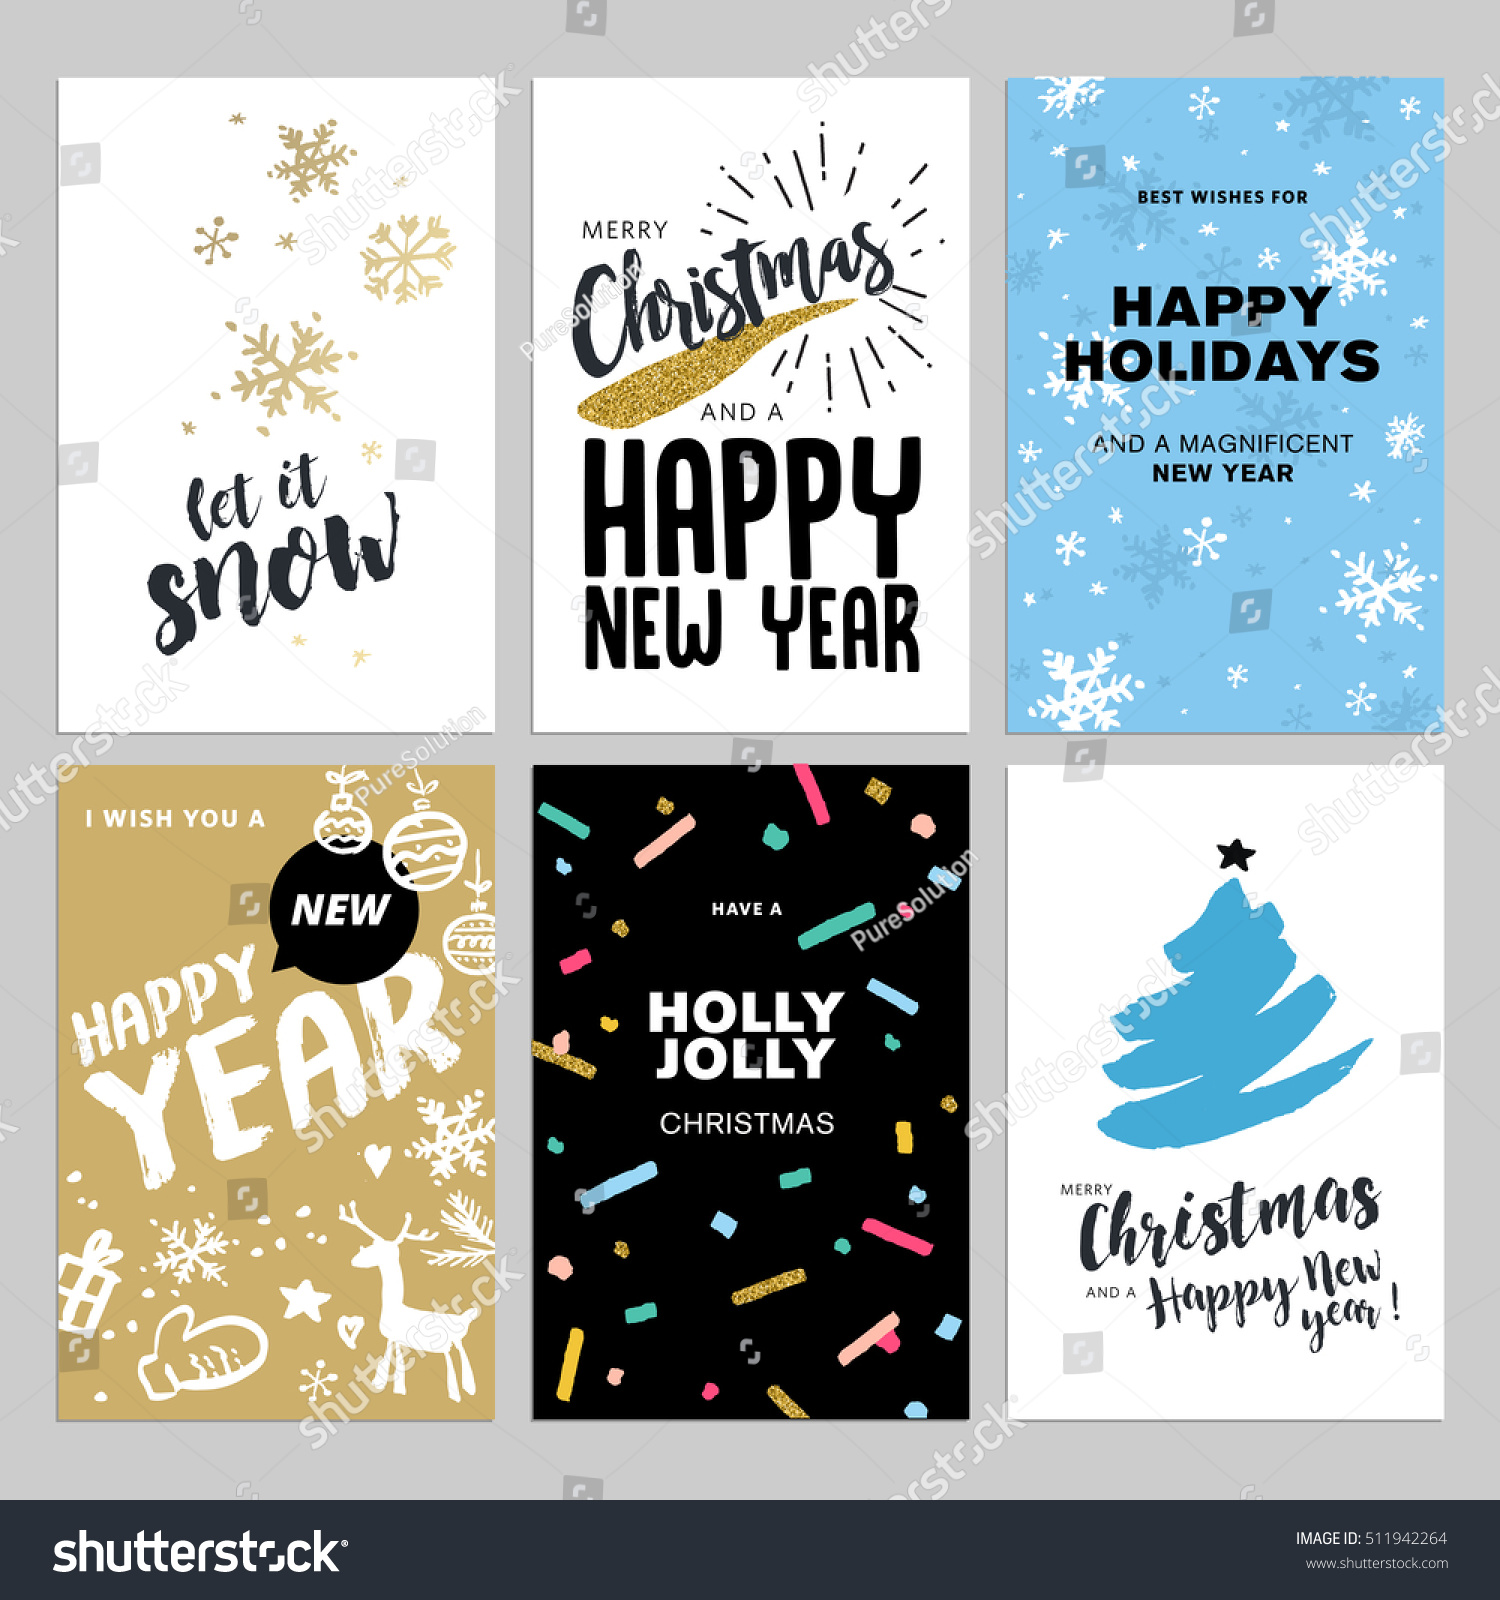 Christmas new year flat design greeting stock vector royalty free christmas and new year flat design greeting cards set hand drawn vector illustrations for greeting m4hsunfo